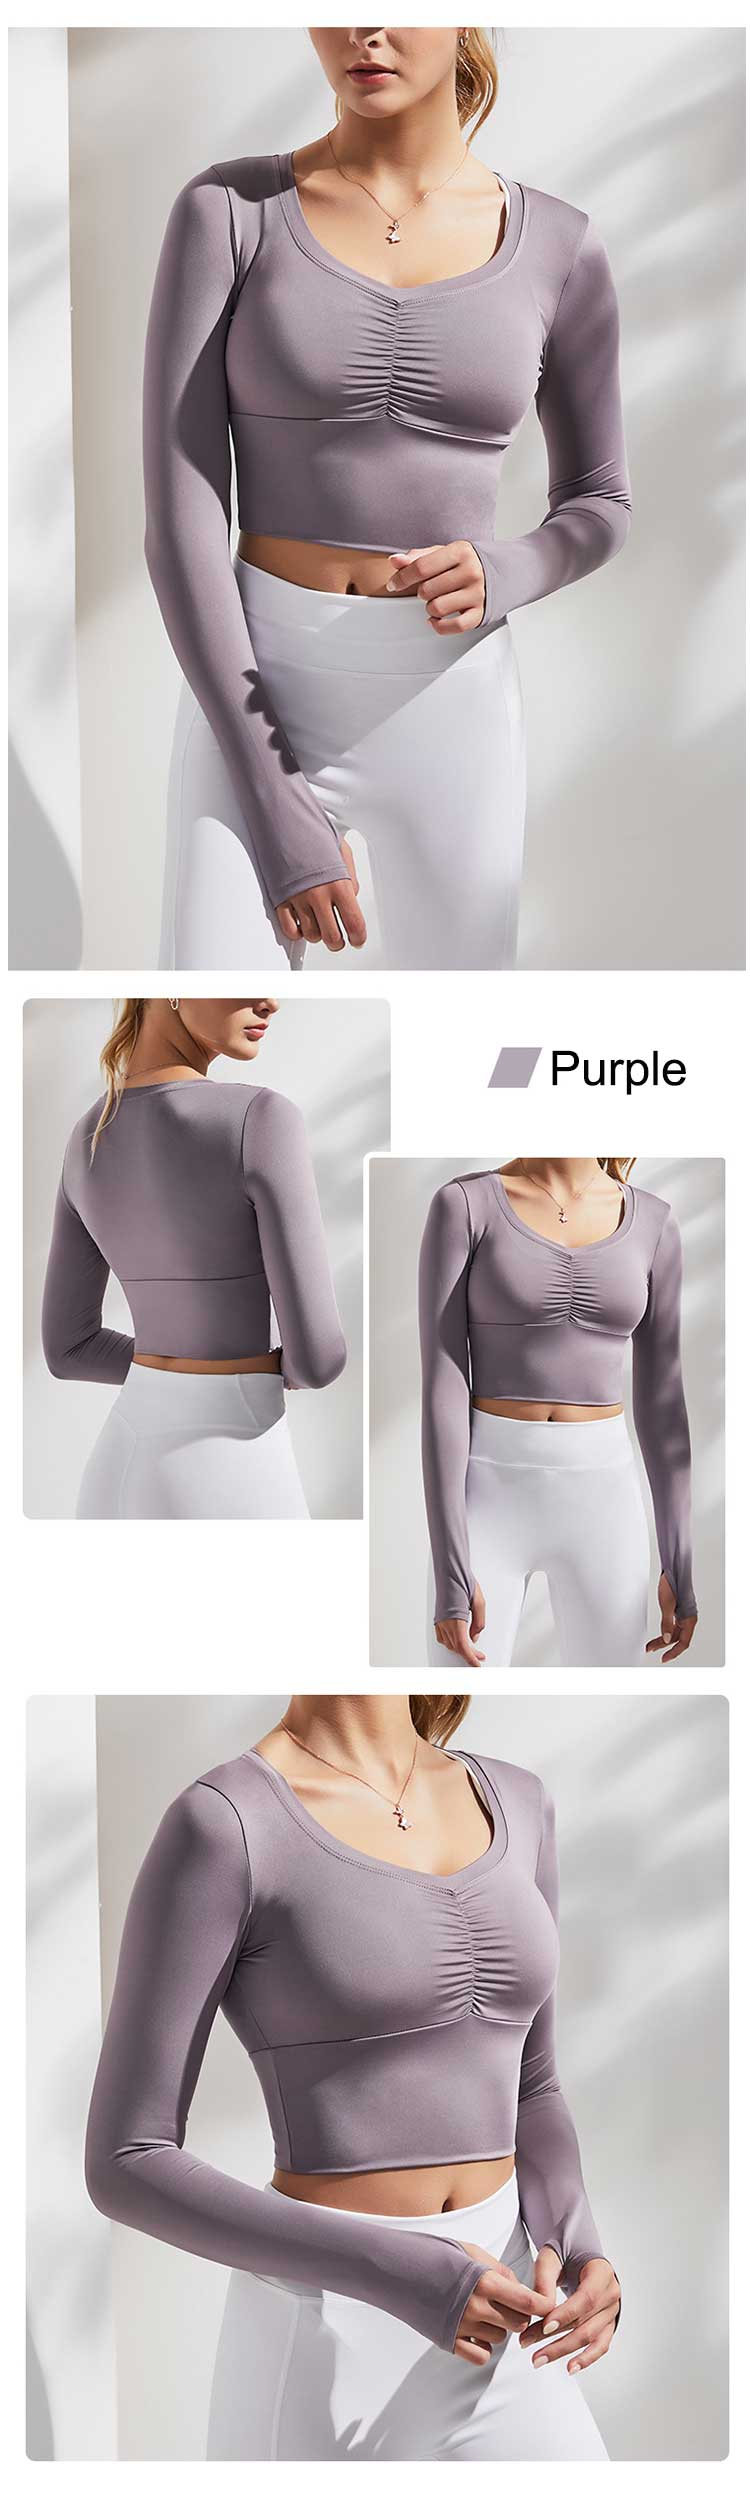 Add-moisture-absorption-and-quick-dry-fabrics-accelerates-